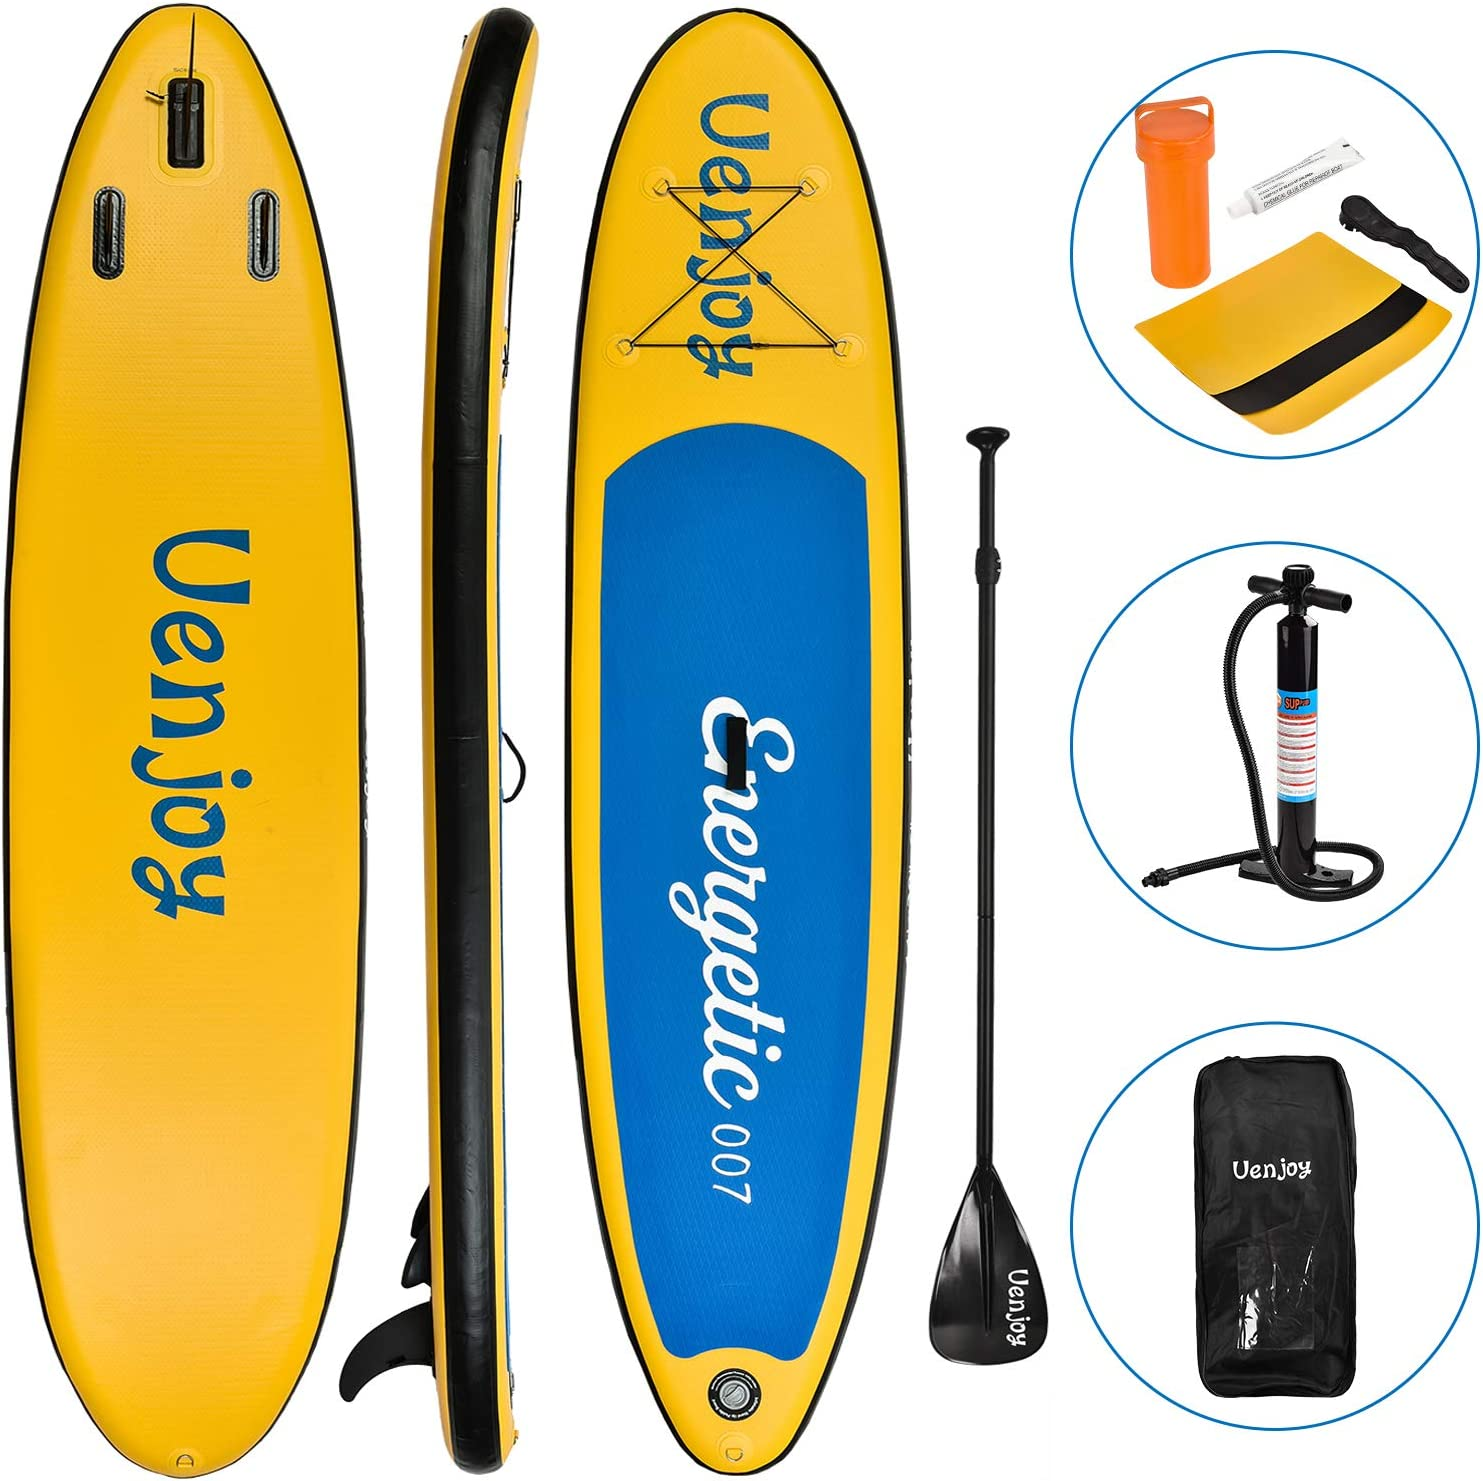 all-inclusive uuenjoy sup package